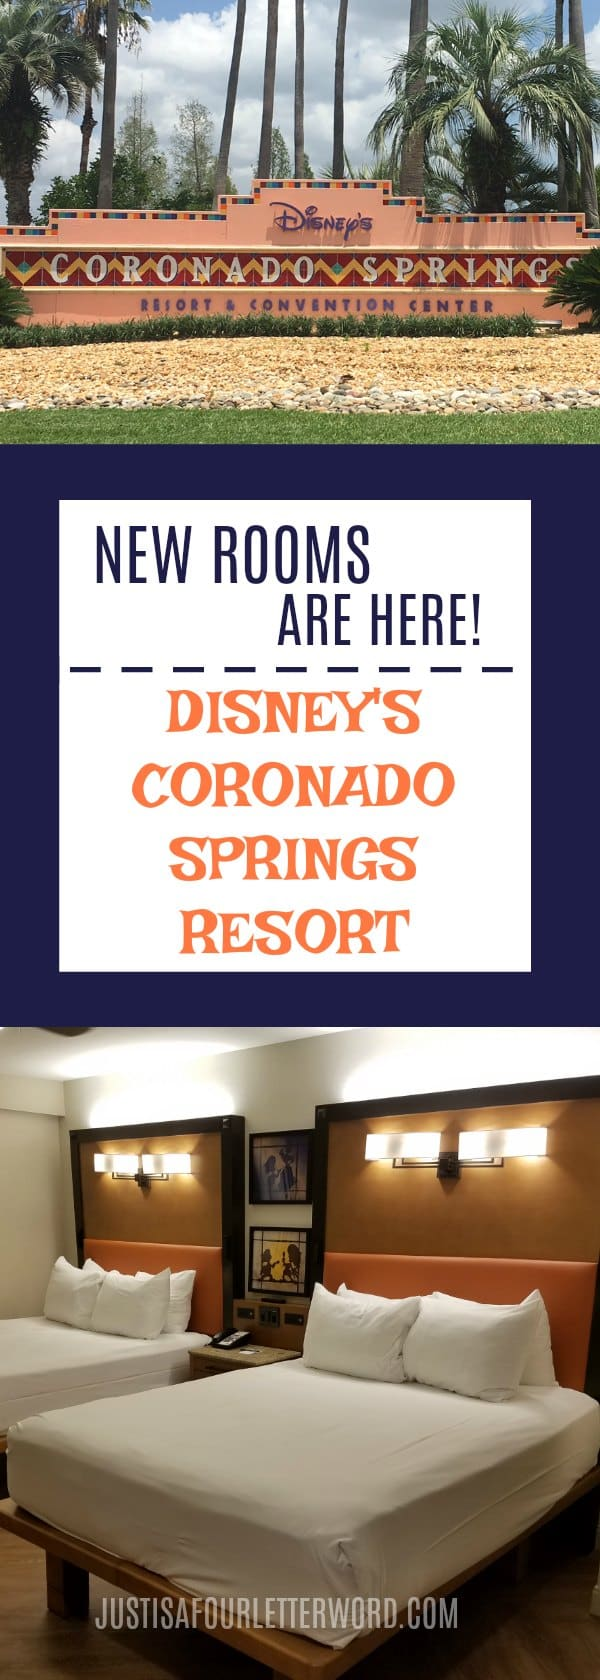 Coronado Springs Room renovations are here and they are beautiful! Take a tour of the new rooms and compare with the older version and plan a stay and this fantastic Disney Resort!